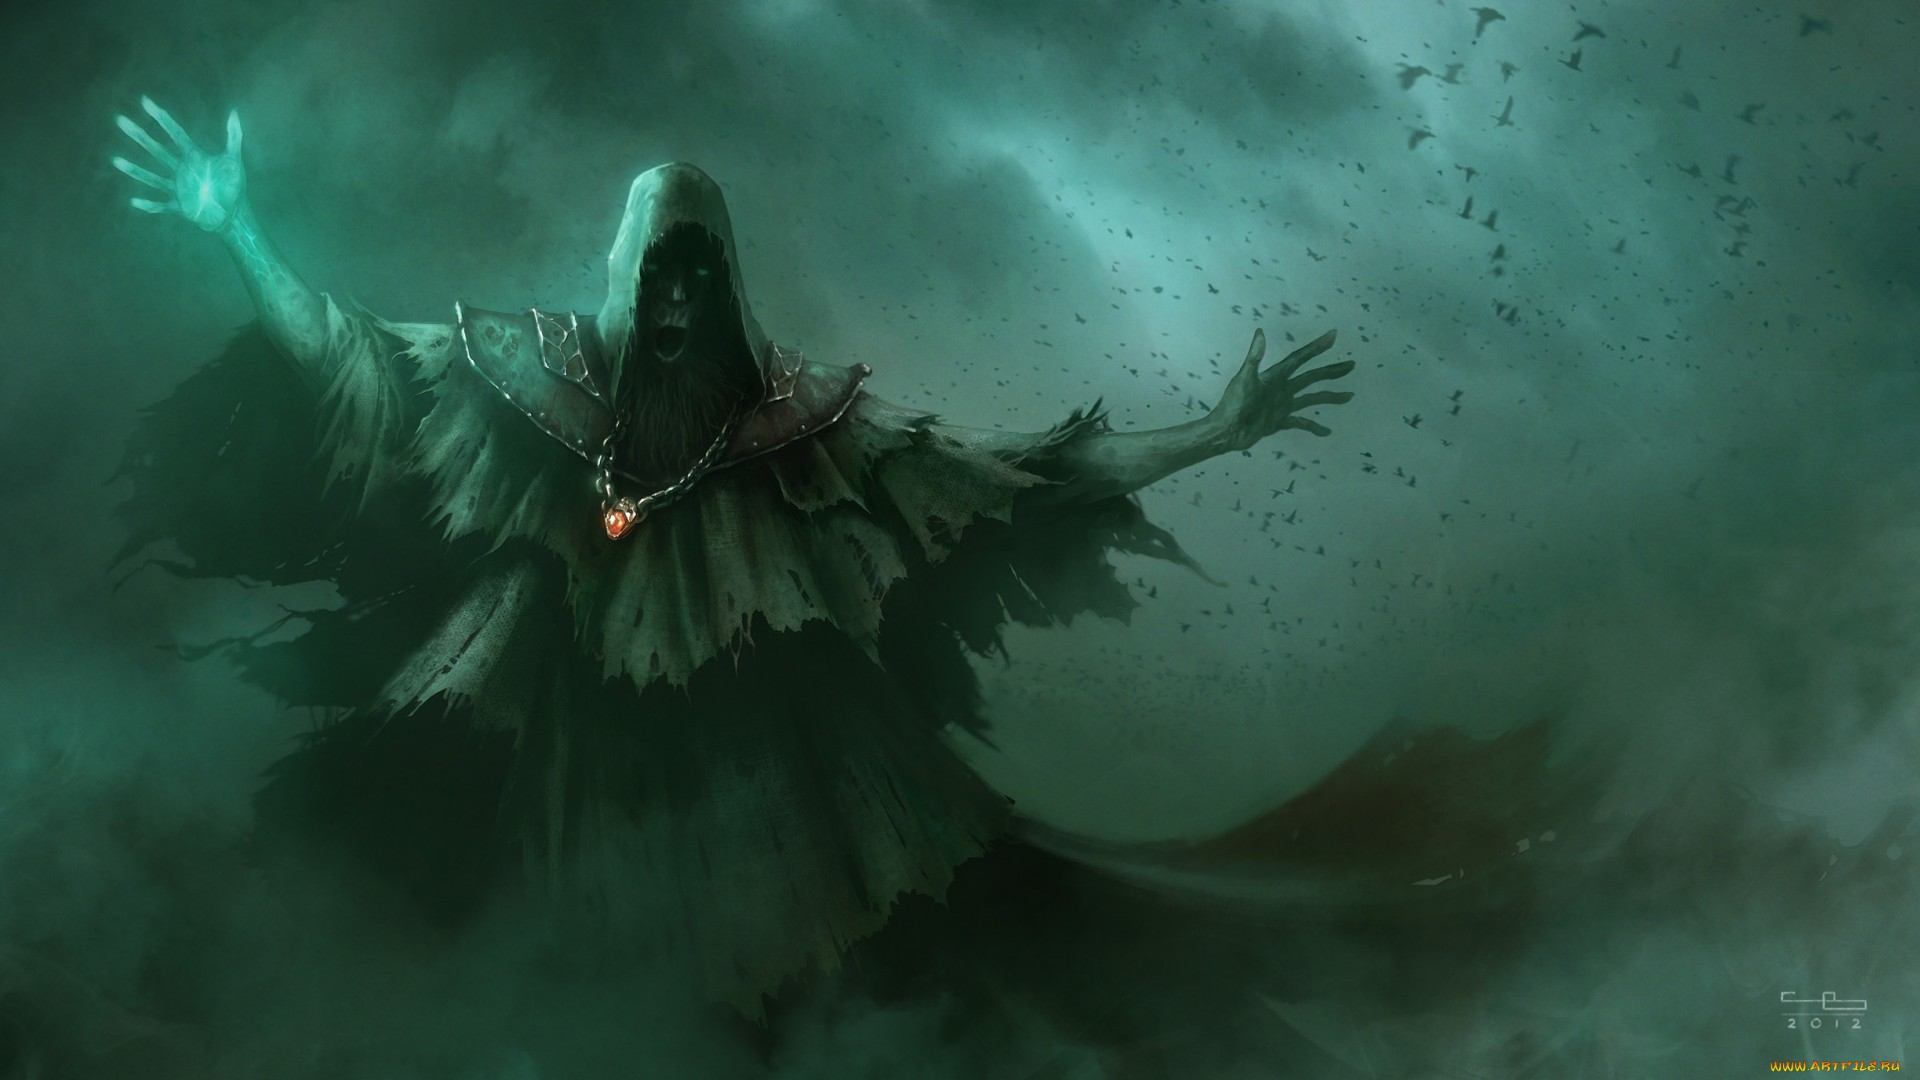 Fantasy Art Necromancers Wallpapers Hd Desktop And: Sorcerer Full HD Wallpaper And Background Image